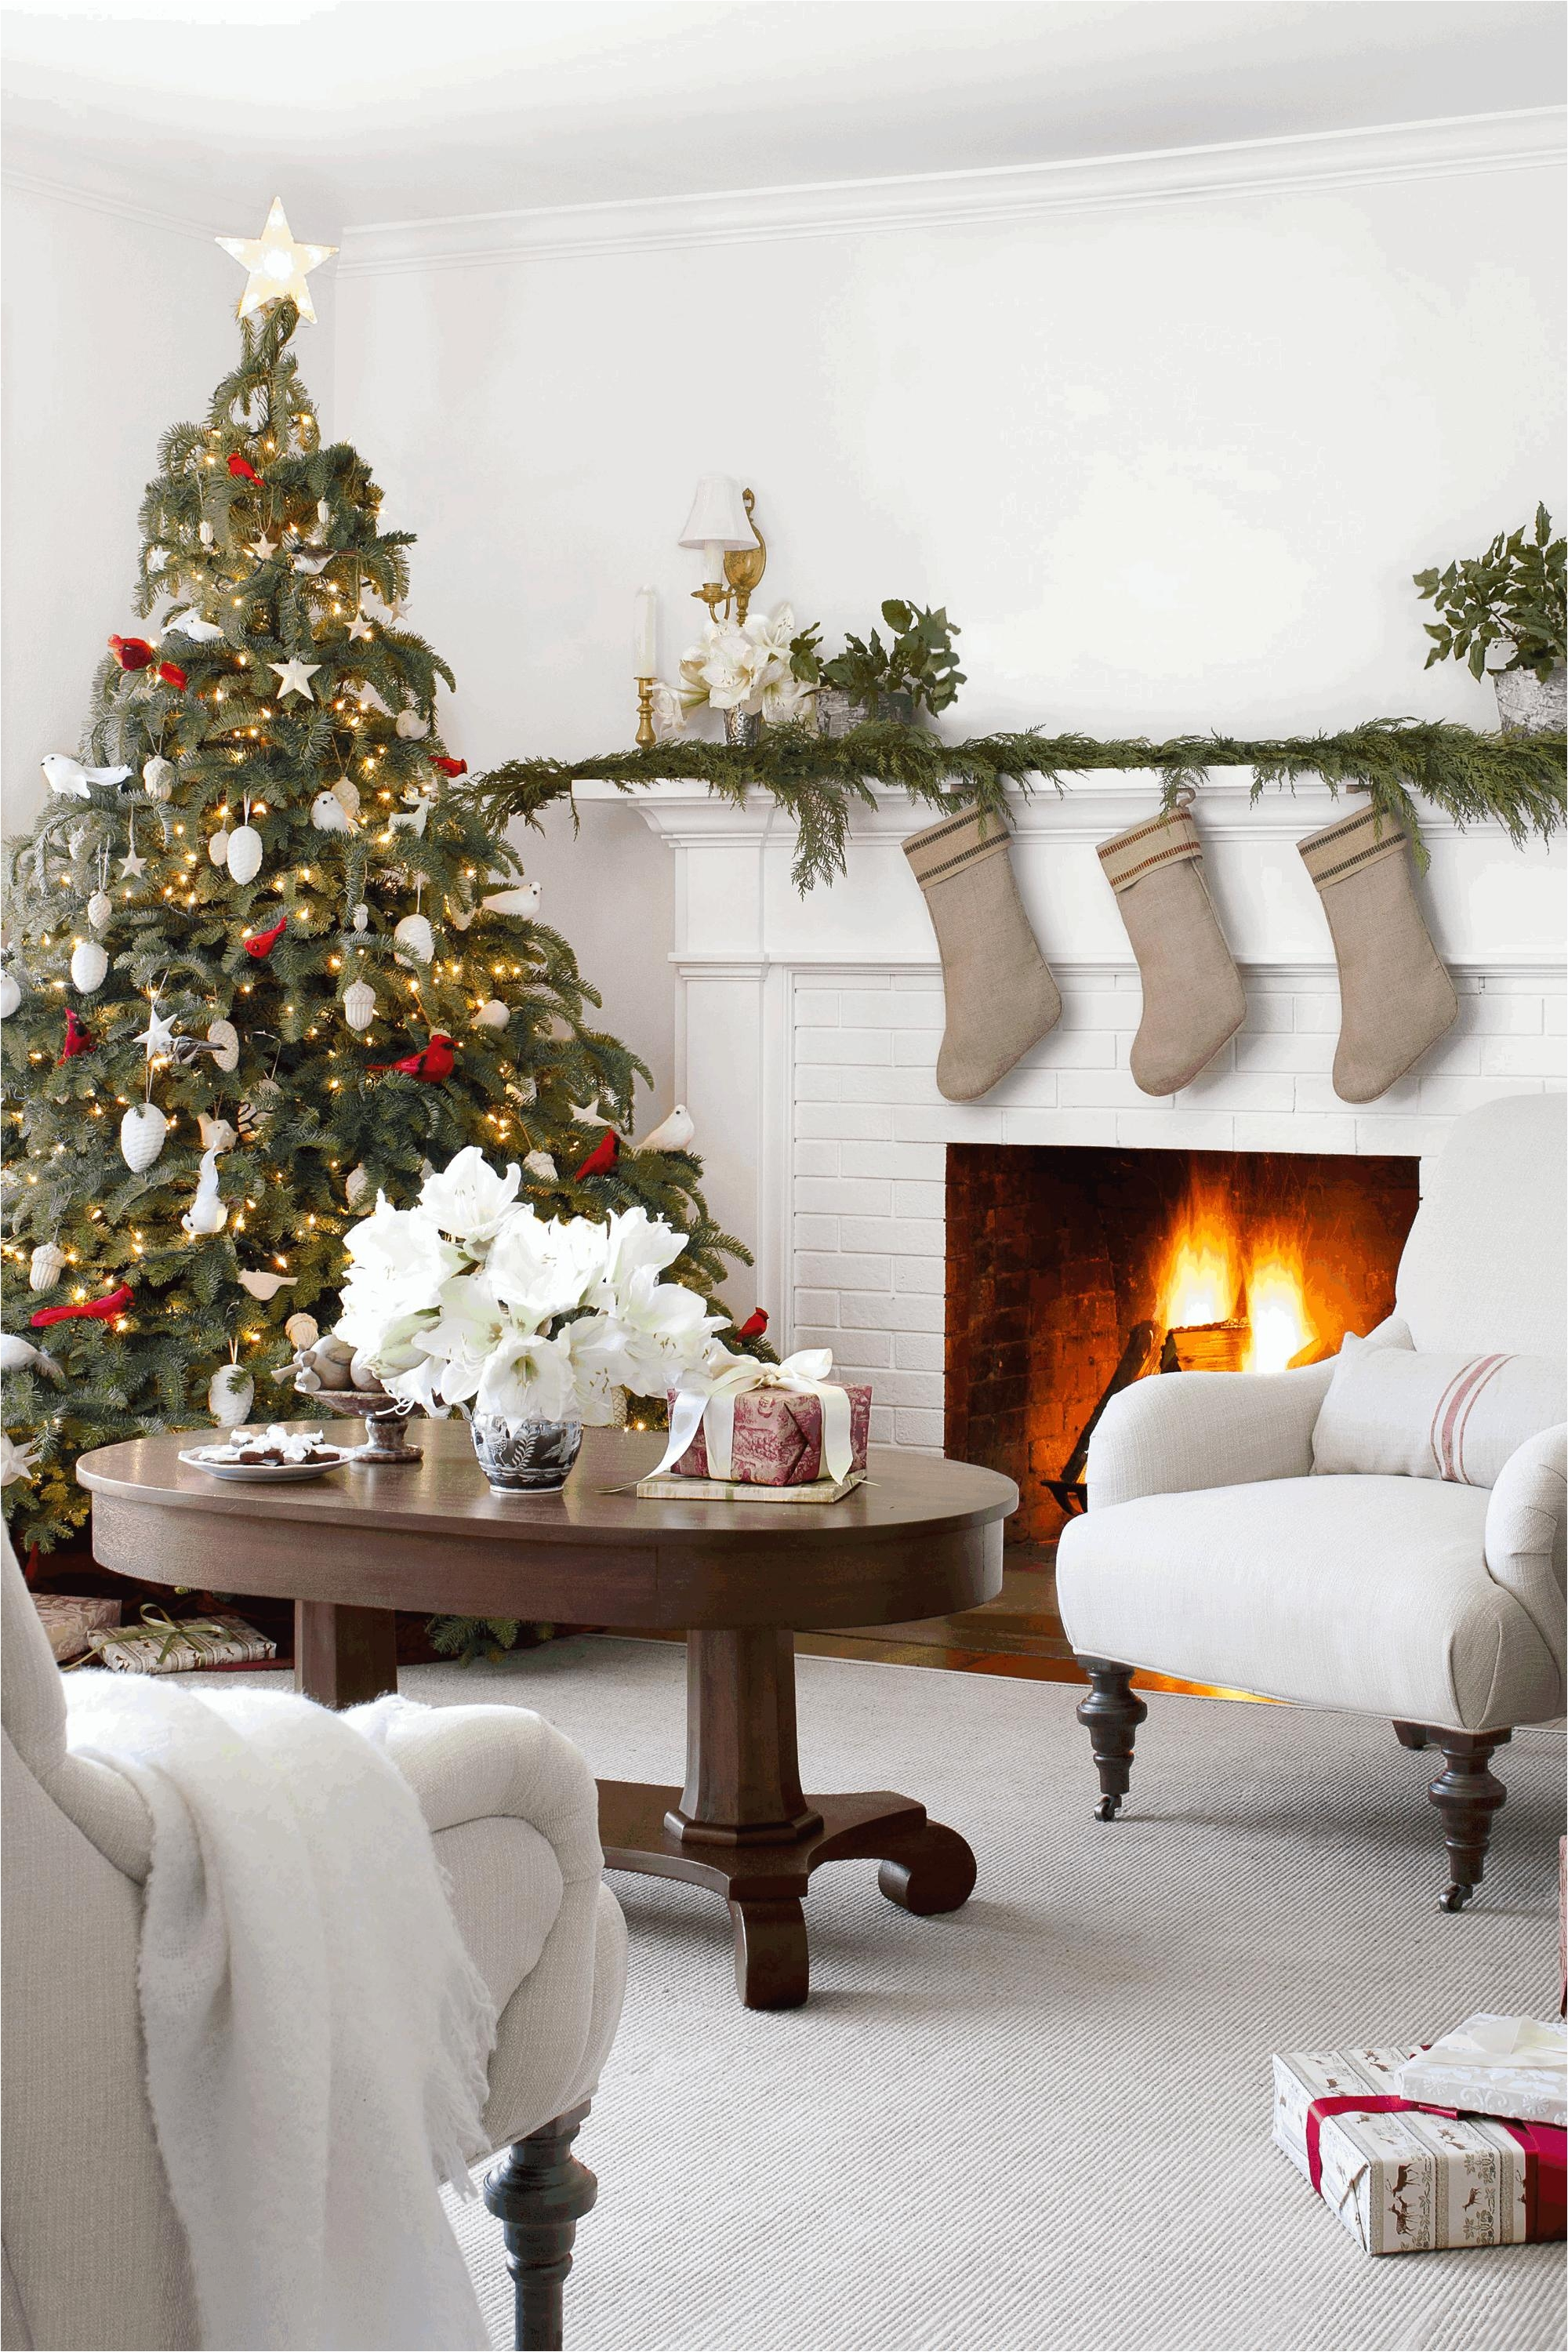 How to Decorate A Round Coffee Table for Christmas